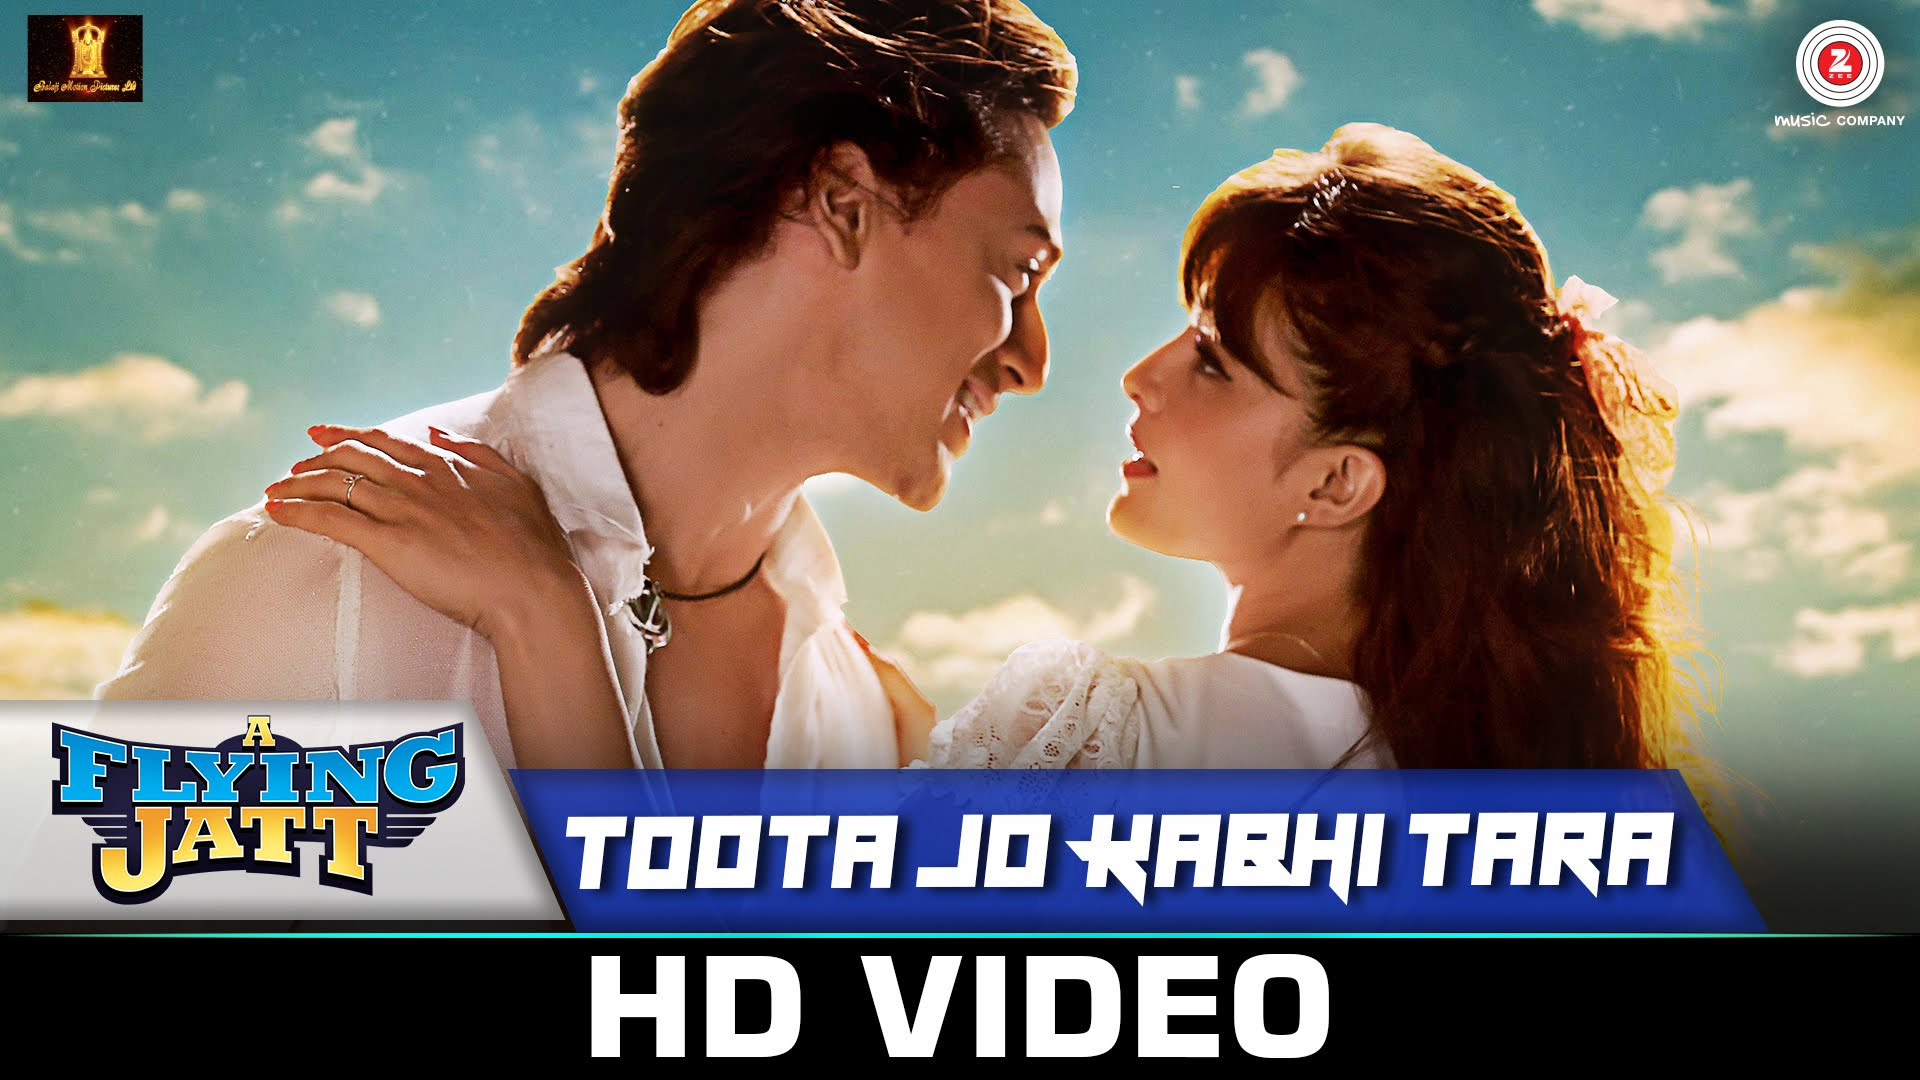 Fall in love in A Flying Jatt's style with Toota Jo Kabhi Tara song!